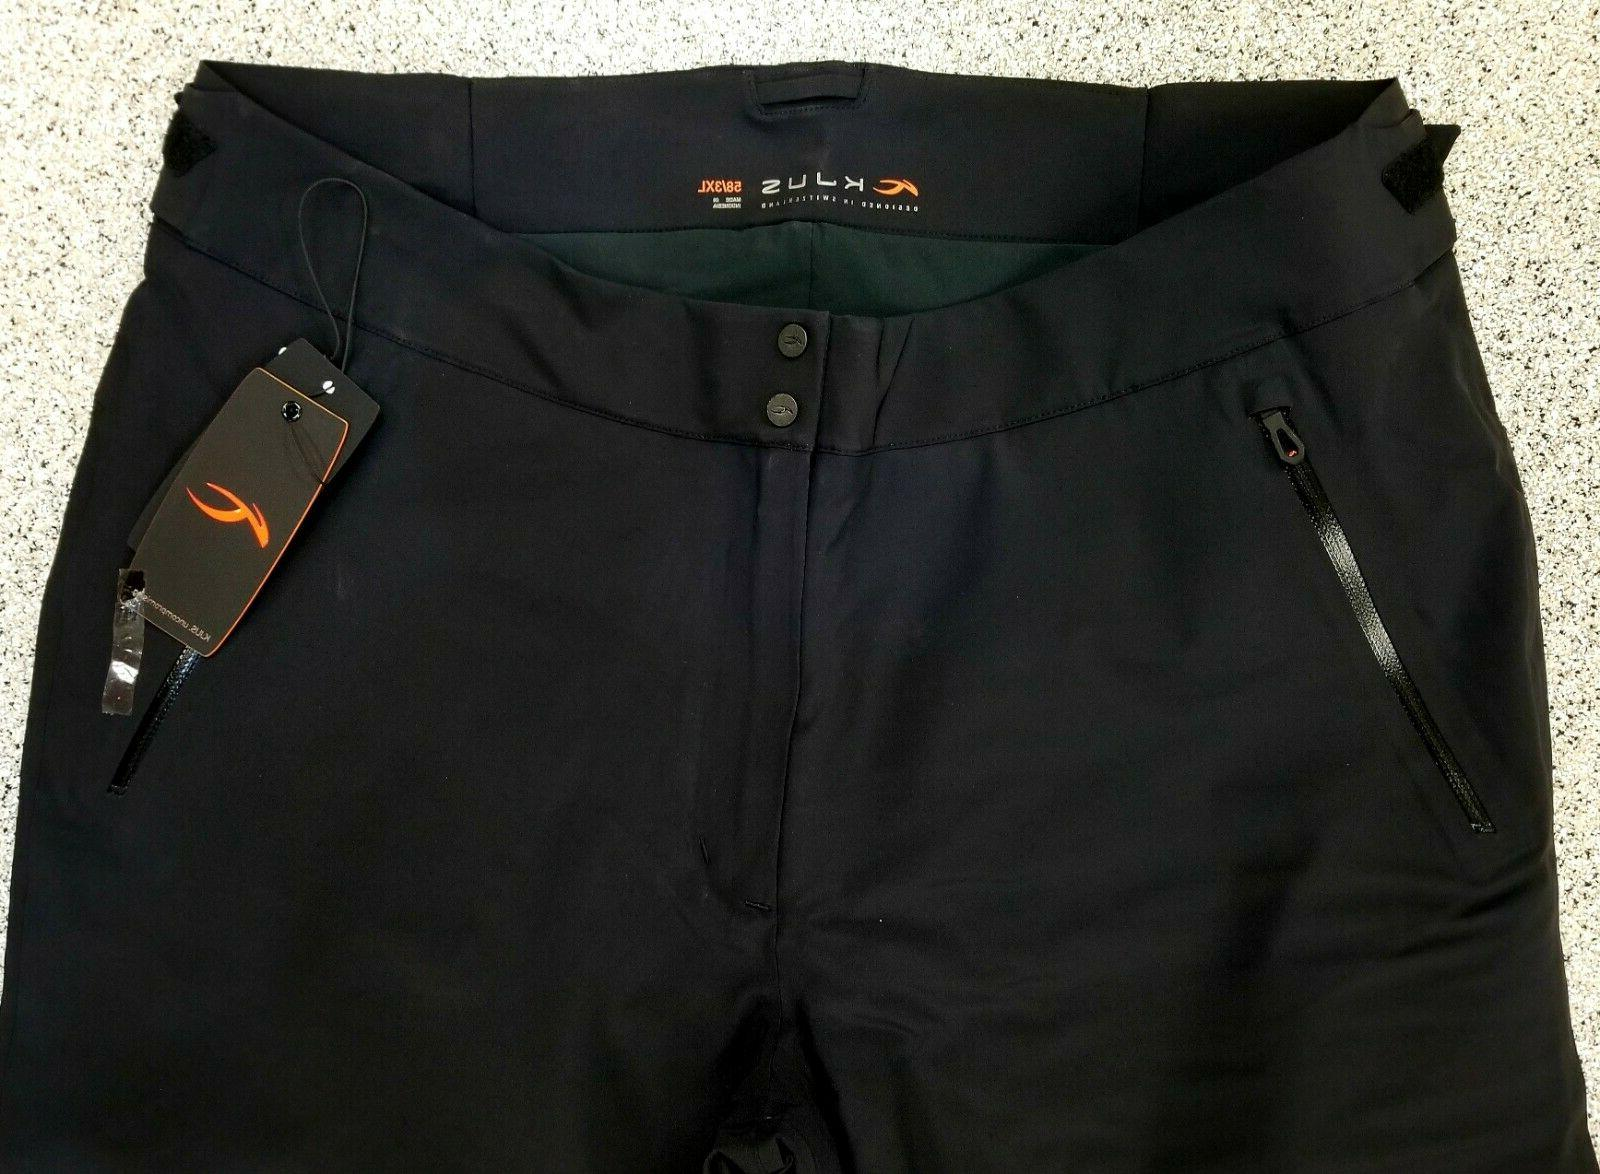 New Mens FORMULA Waterproof Snowboard Pants Black